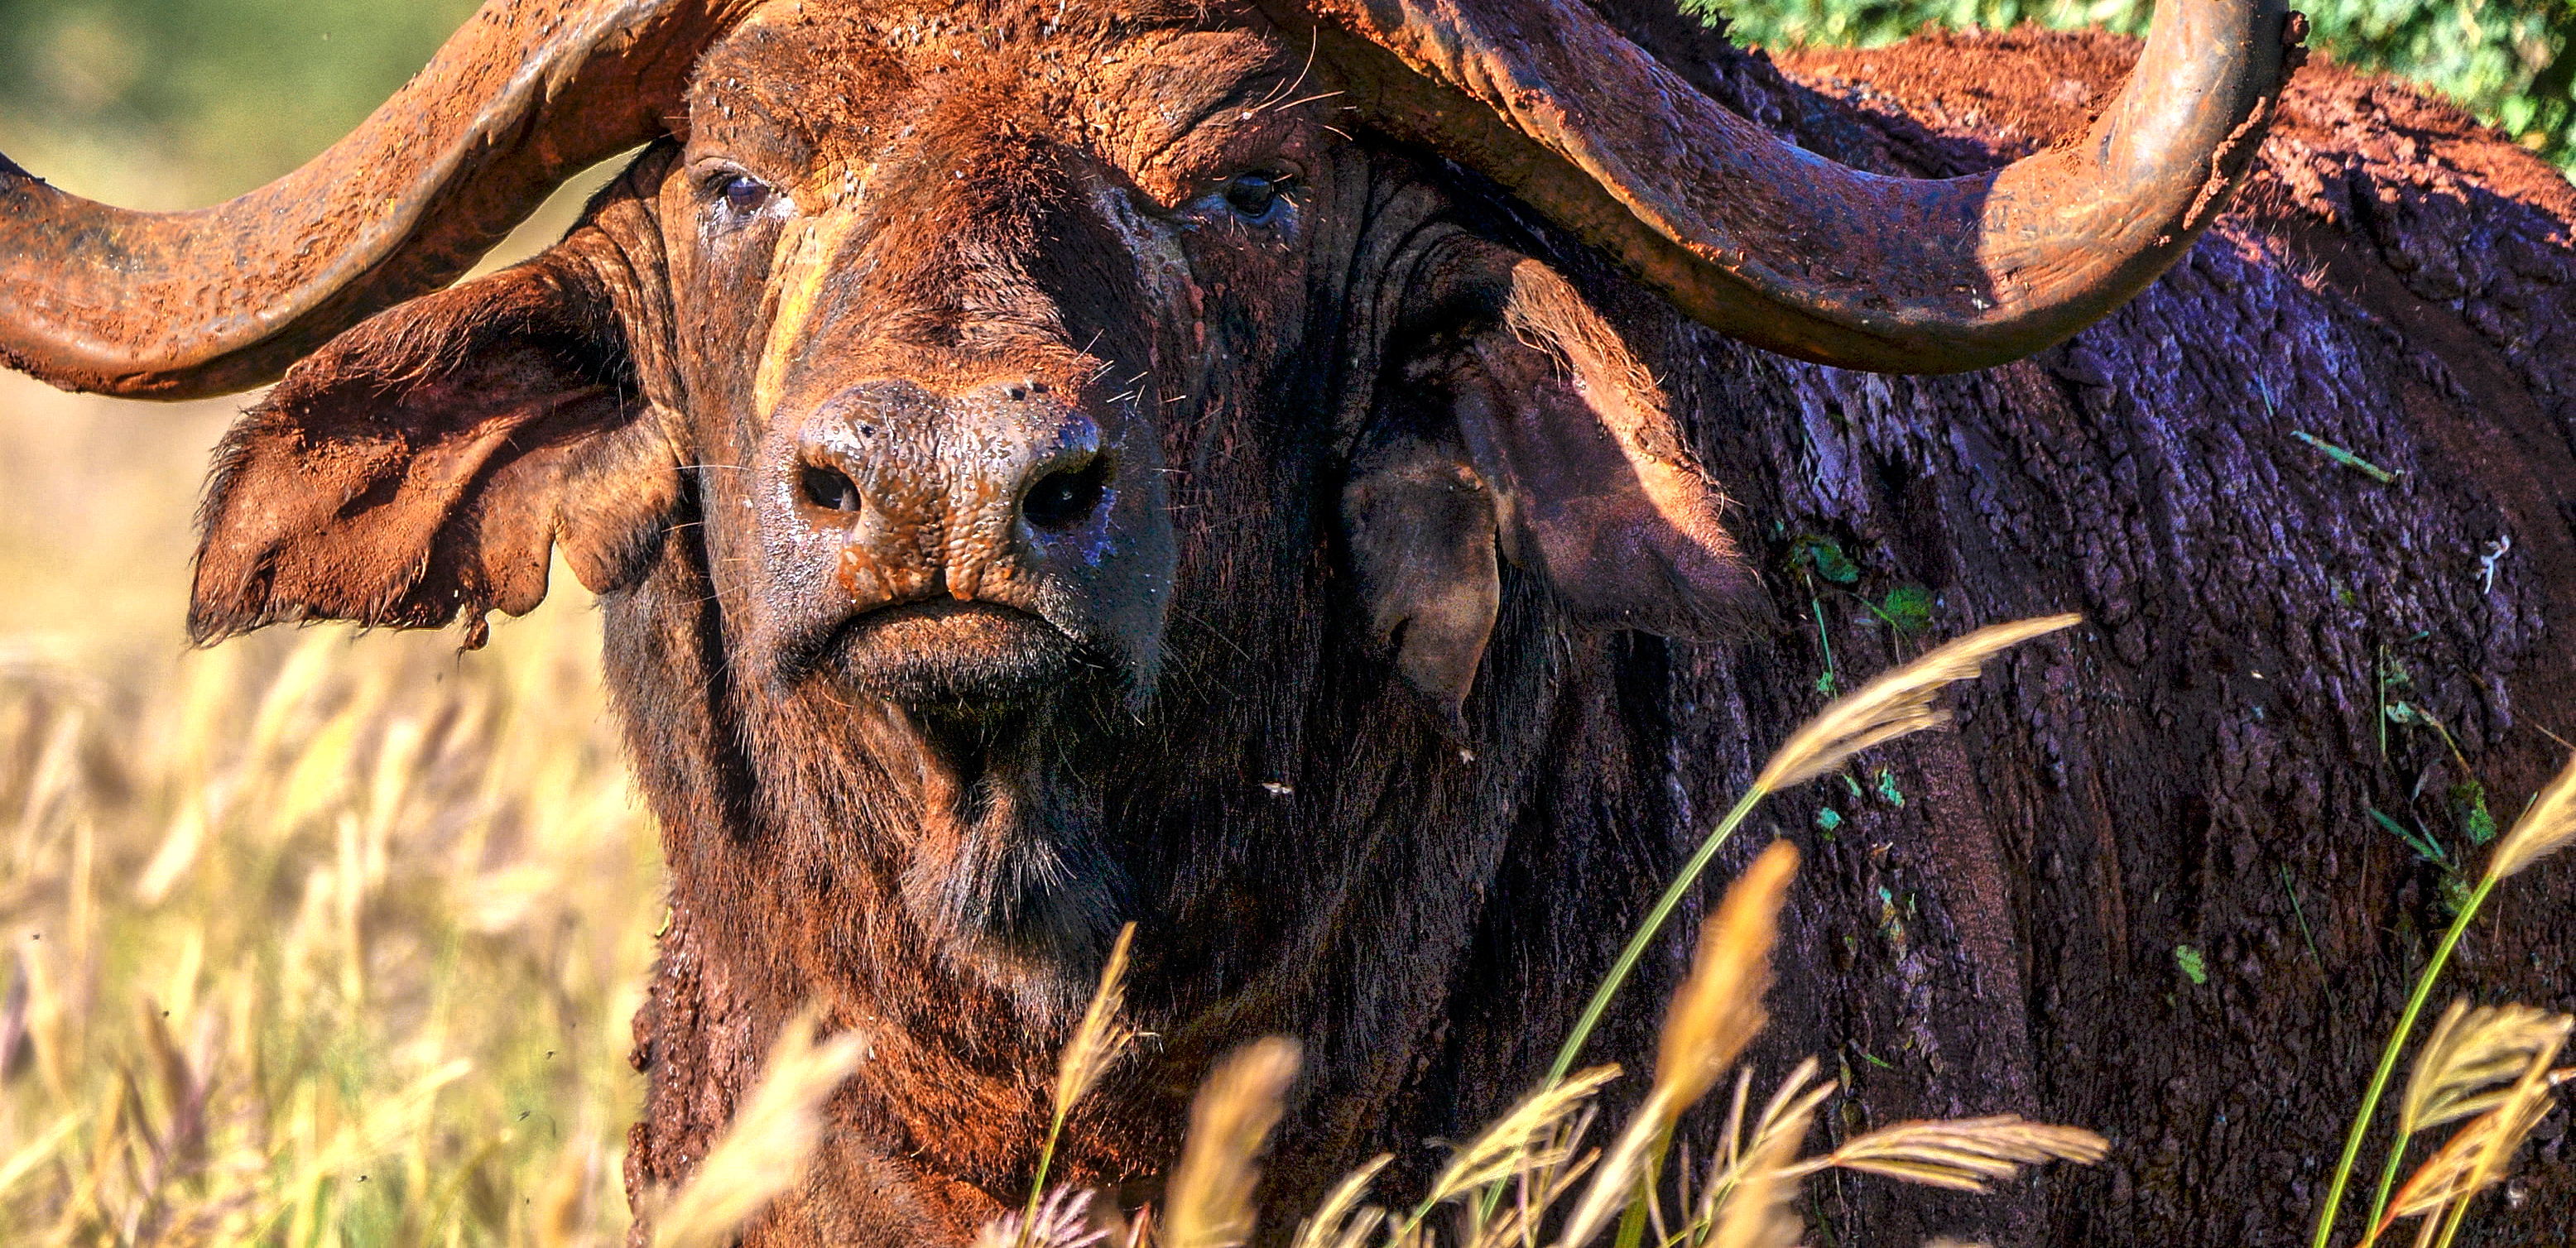 6-Buffalo_close-up